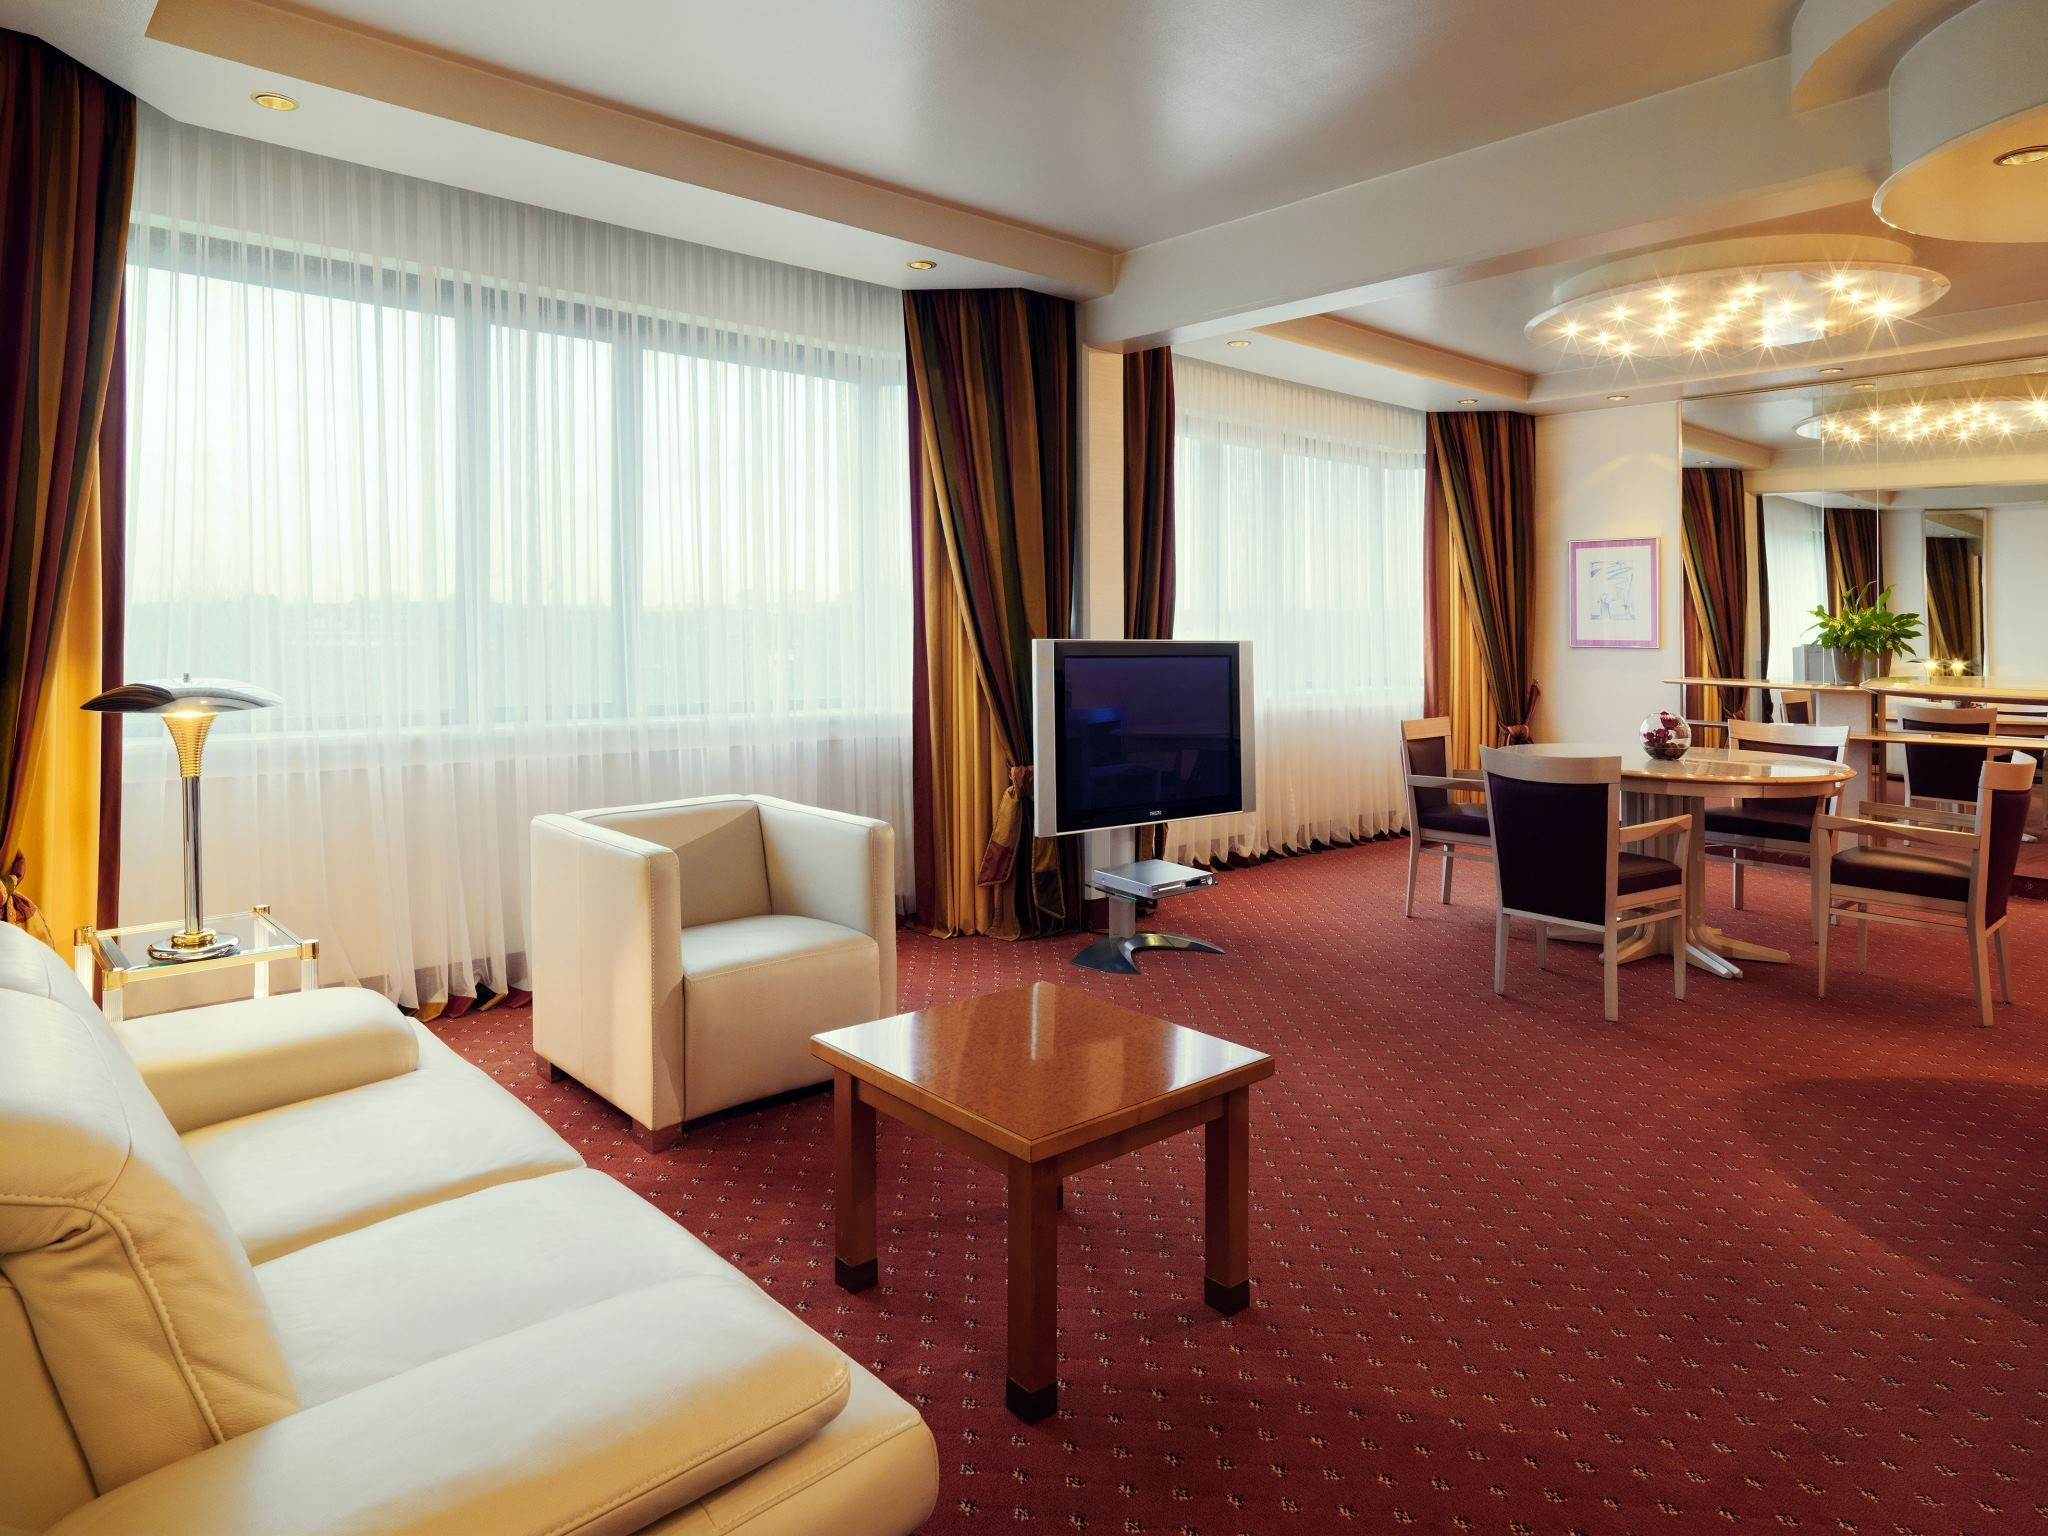 City Hotel Essen Suite